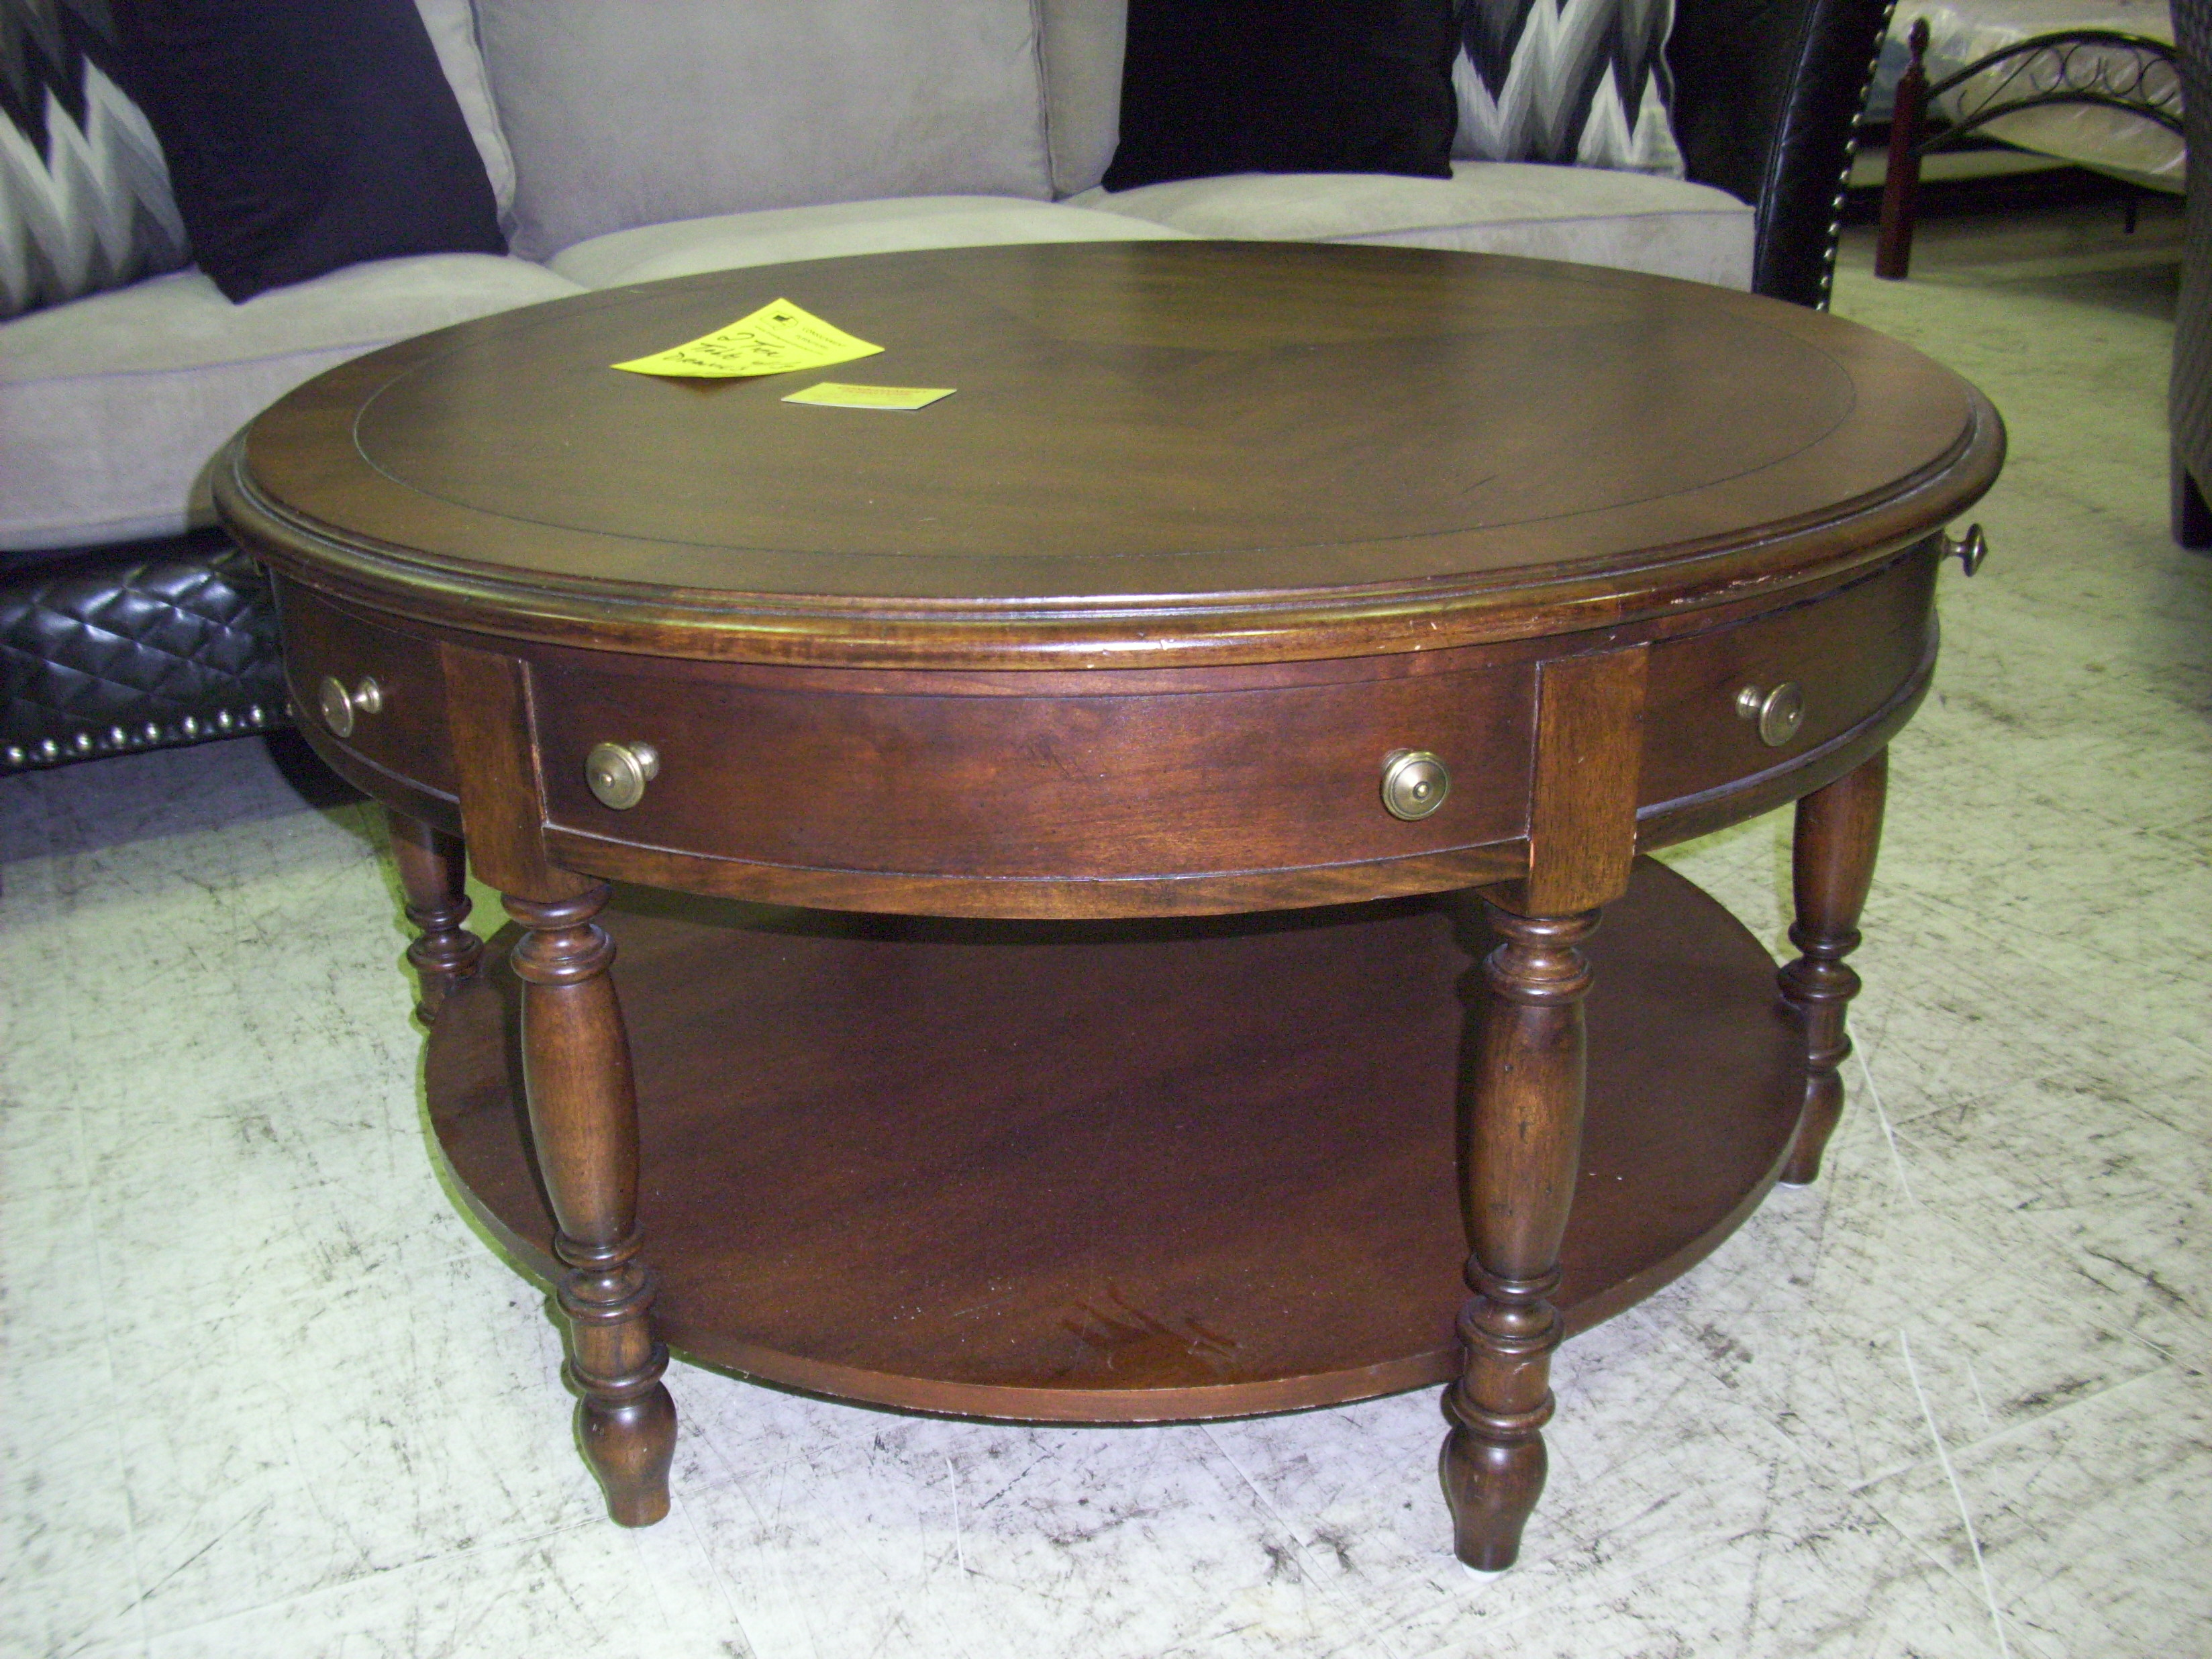 Round Coffee Table With Two Tiers And Three Drawers Round Coffee Tables With Drawers Round Cocktail Table With Drawers (View 8 of 10)